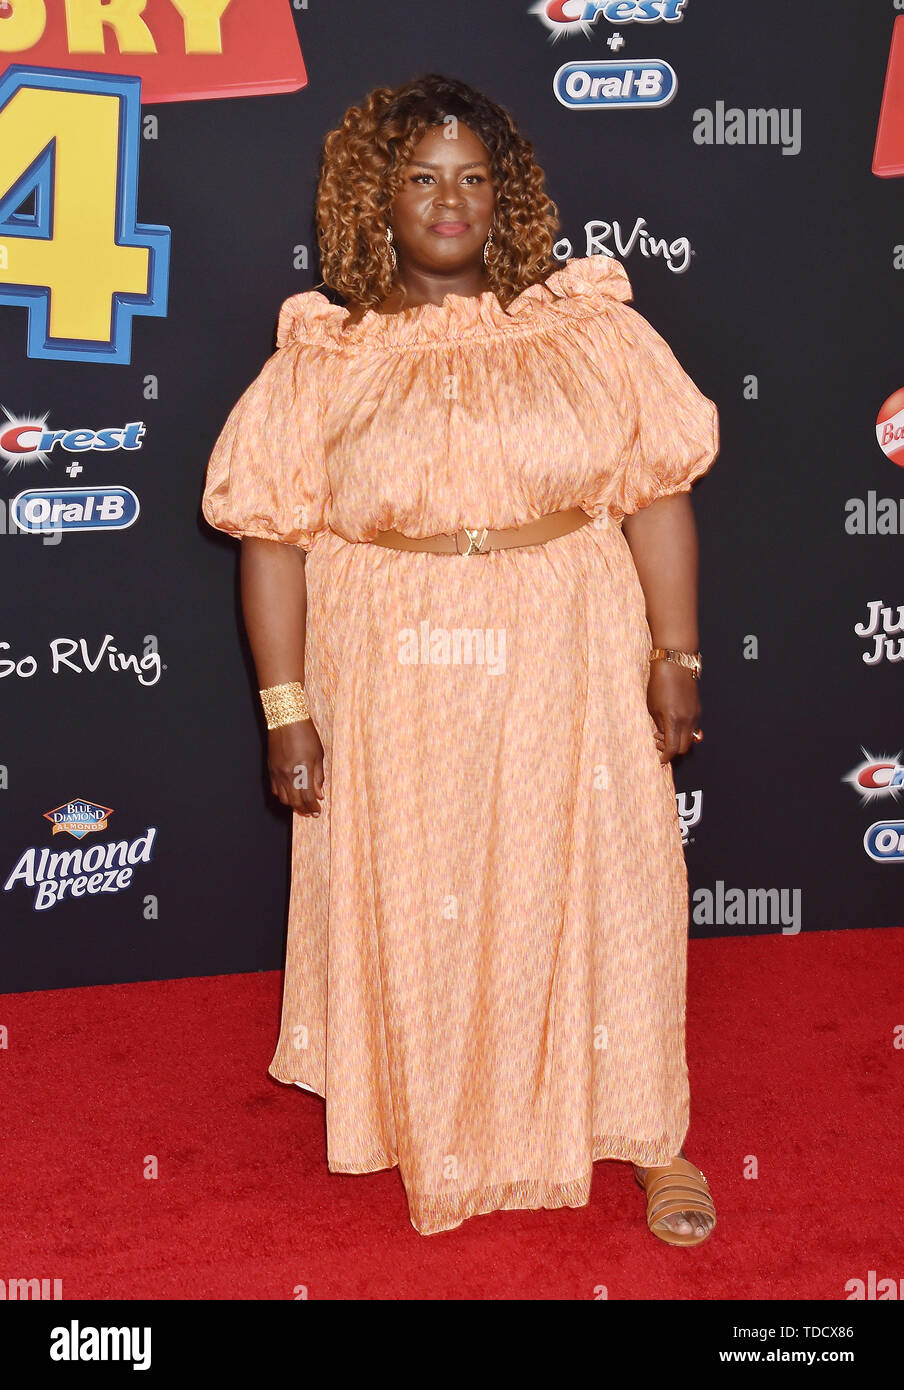 HOLLYWOOD, CA - JUNE 11: Retta arrives at the premiere of Disney and Pixar's 'Toy Story 4' at the El Capitan Theatre on June 11, 2019 in Los Angeles, California. - Stock Image